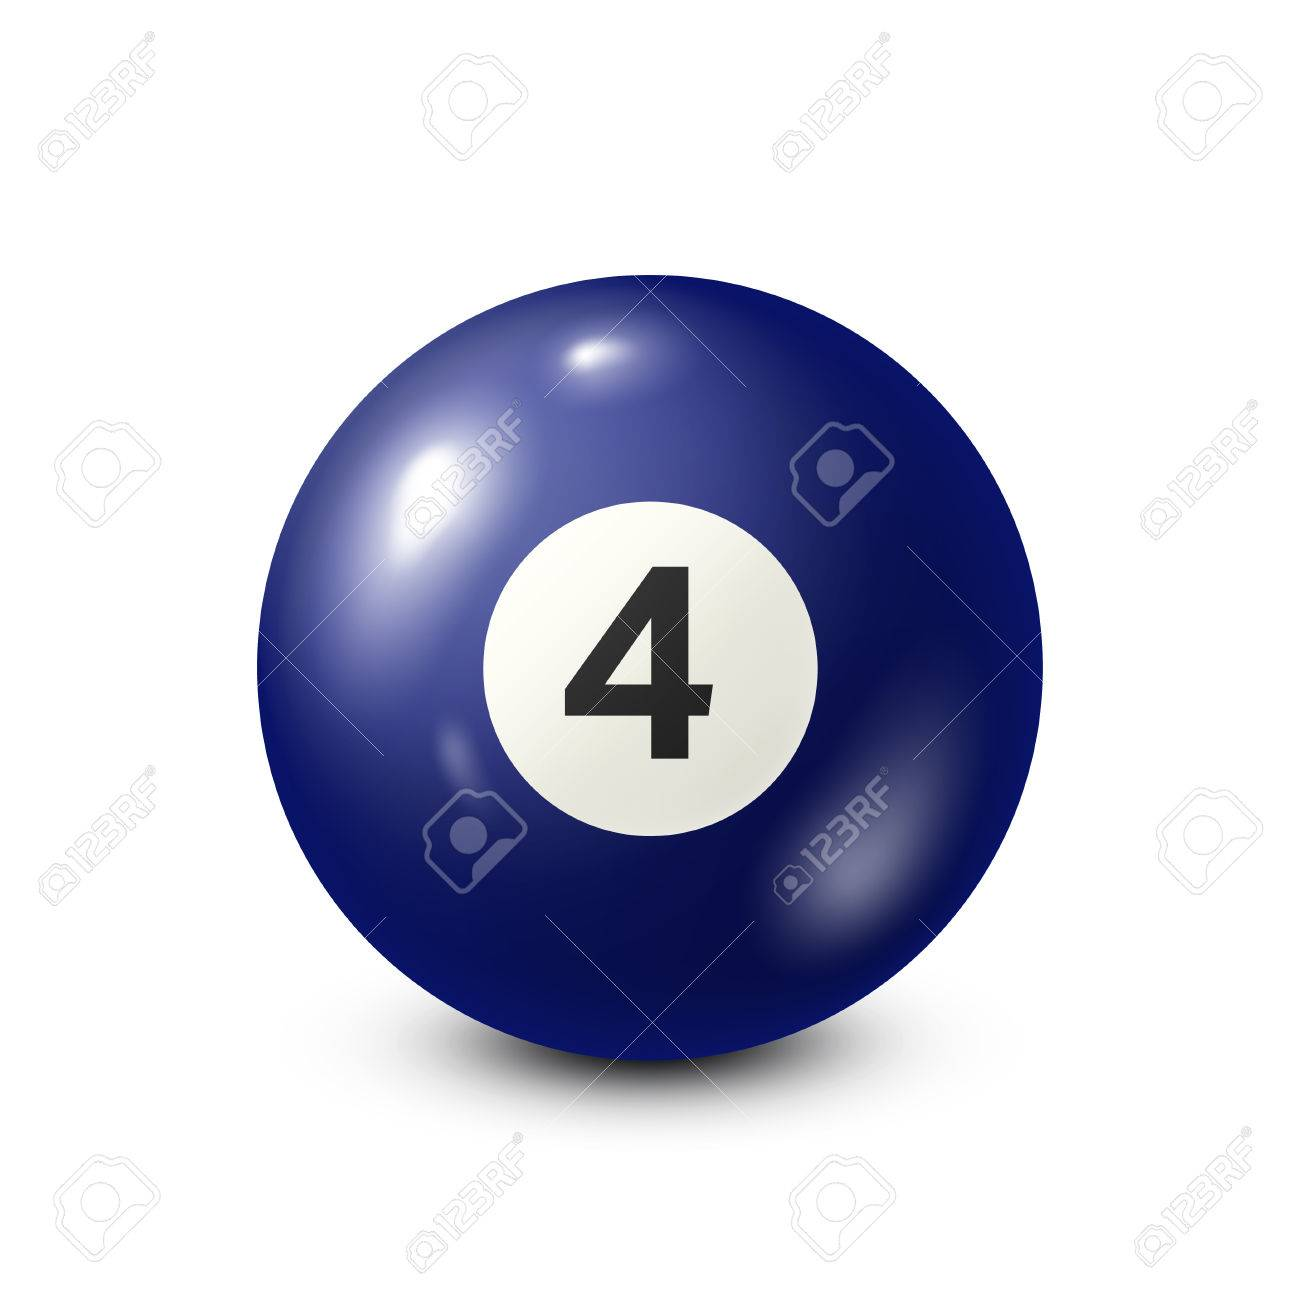 Billiard,blue pool ball with number 4.Snooker. White background.Vector illustration. Banque d'images - 80446072